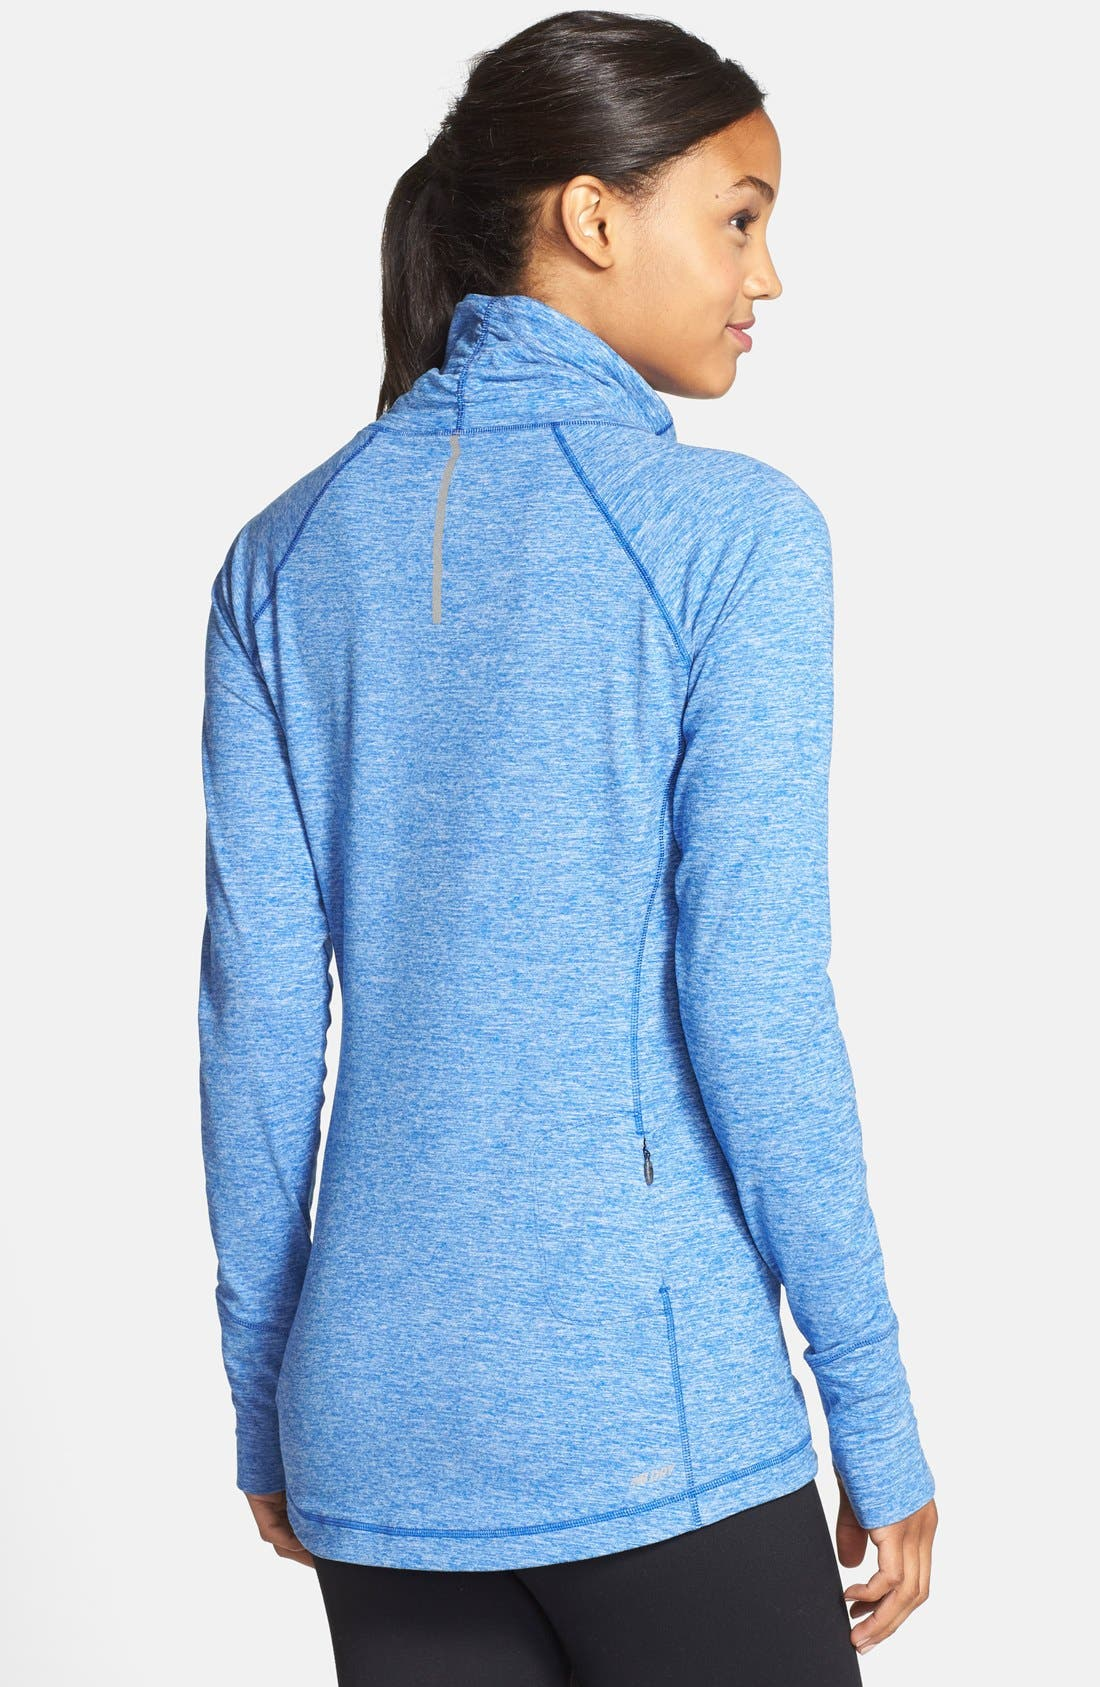 Space Dye Knit Pullover,                             Alternate thumbnail 2, color,                             400